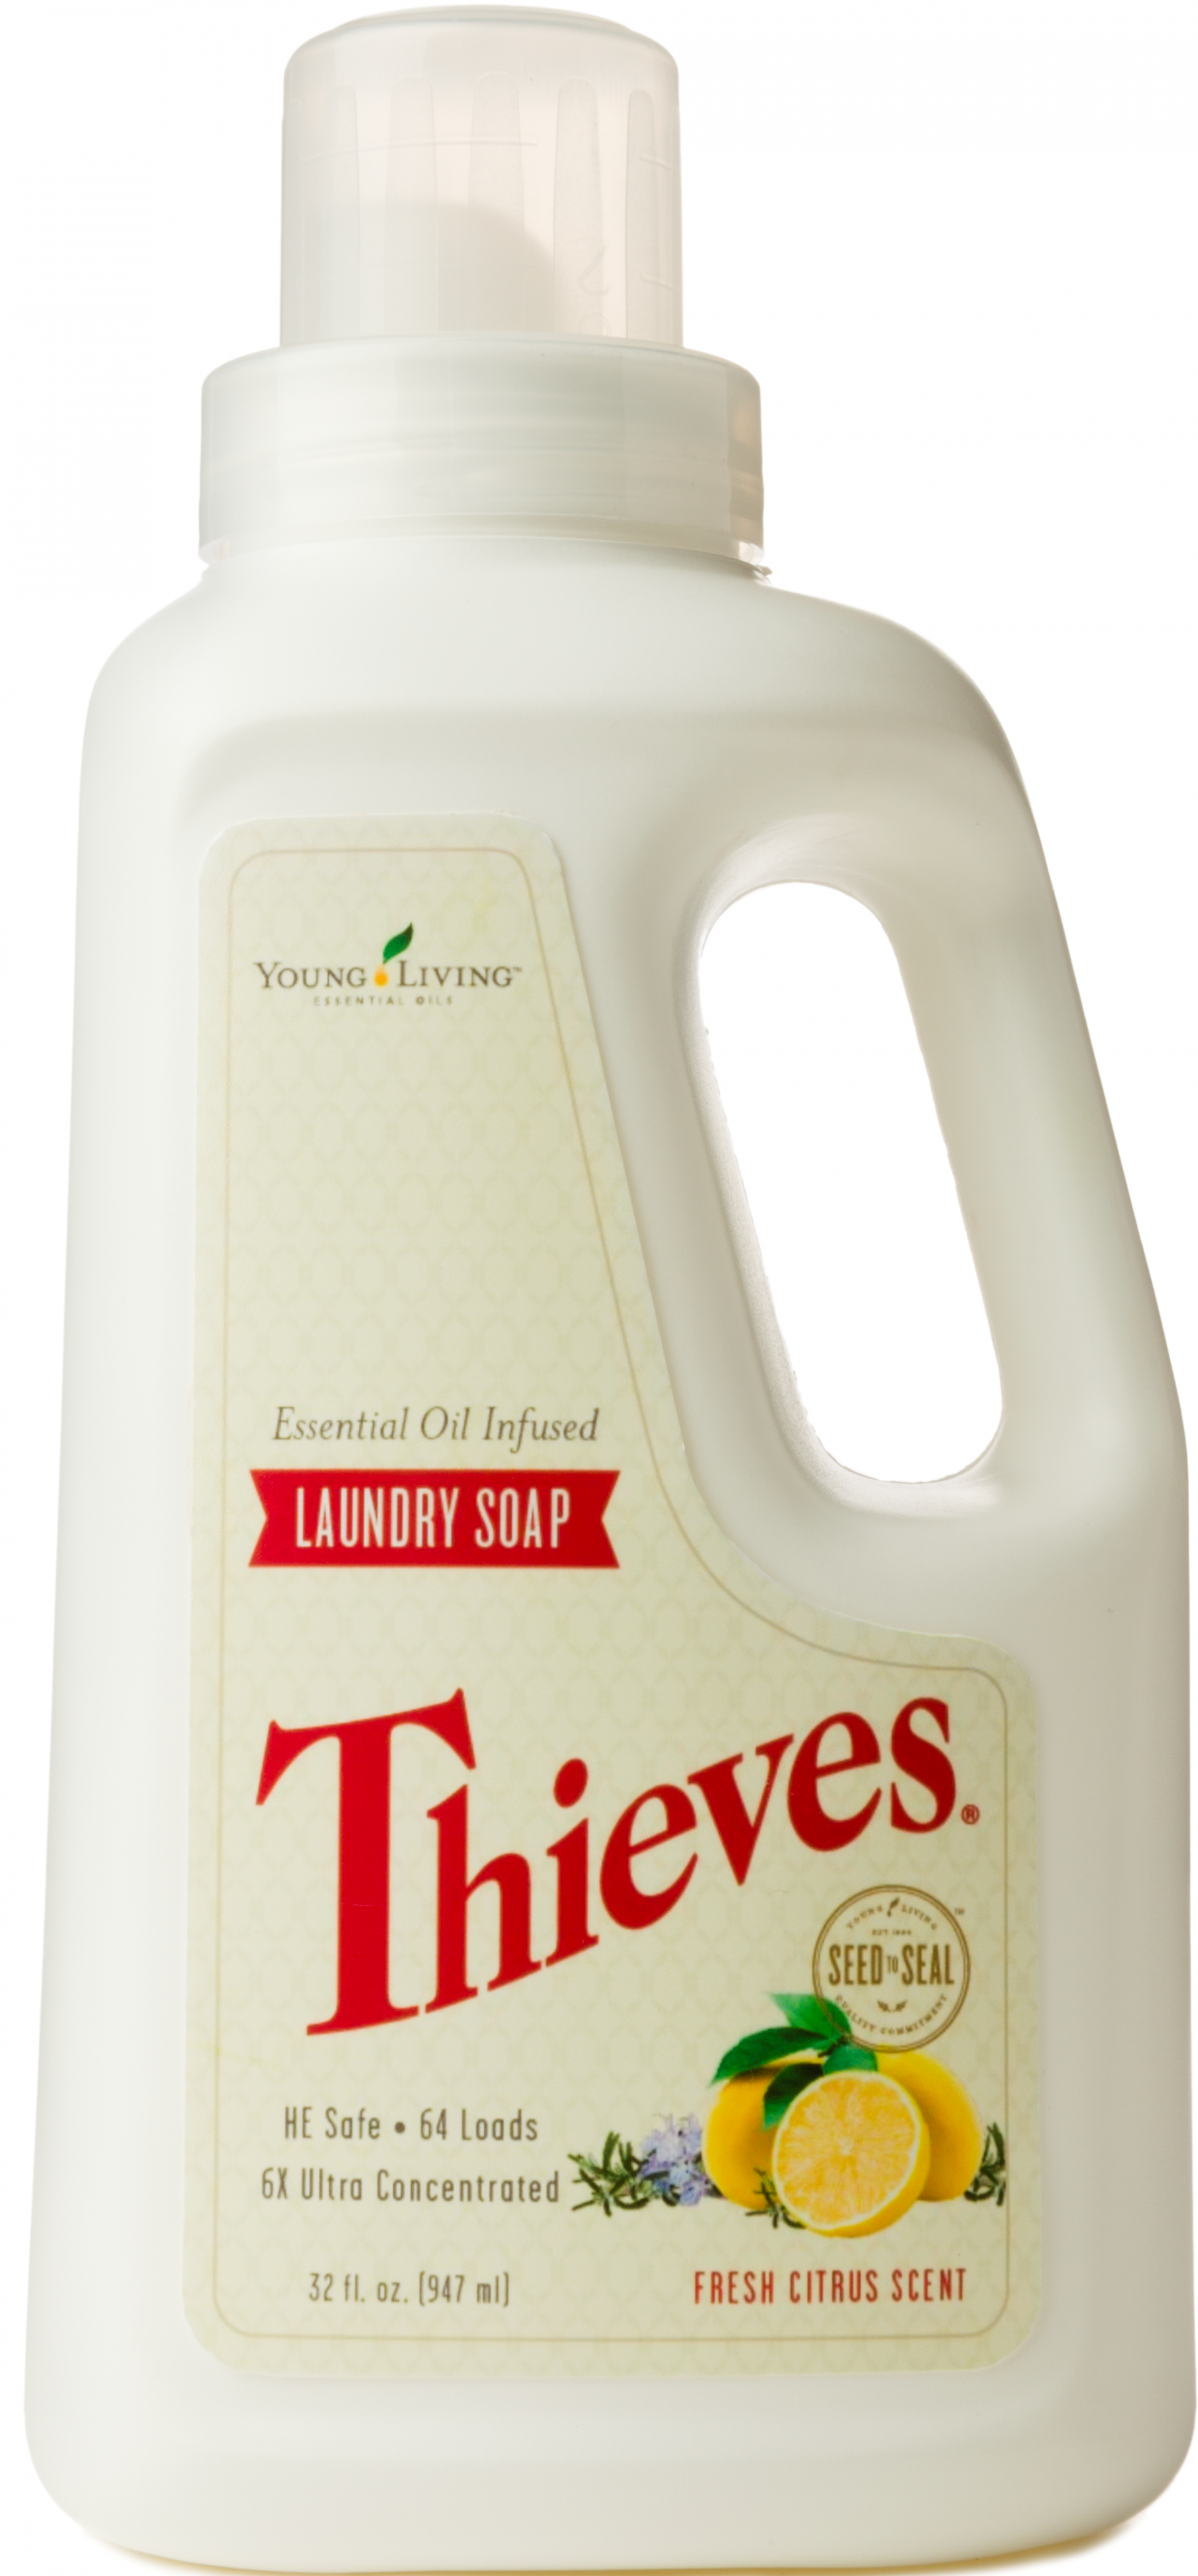 Thieves® Laundry Soap | Young Living Essential Oils